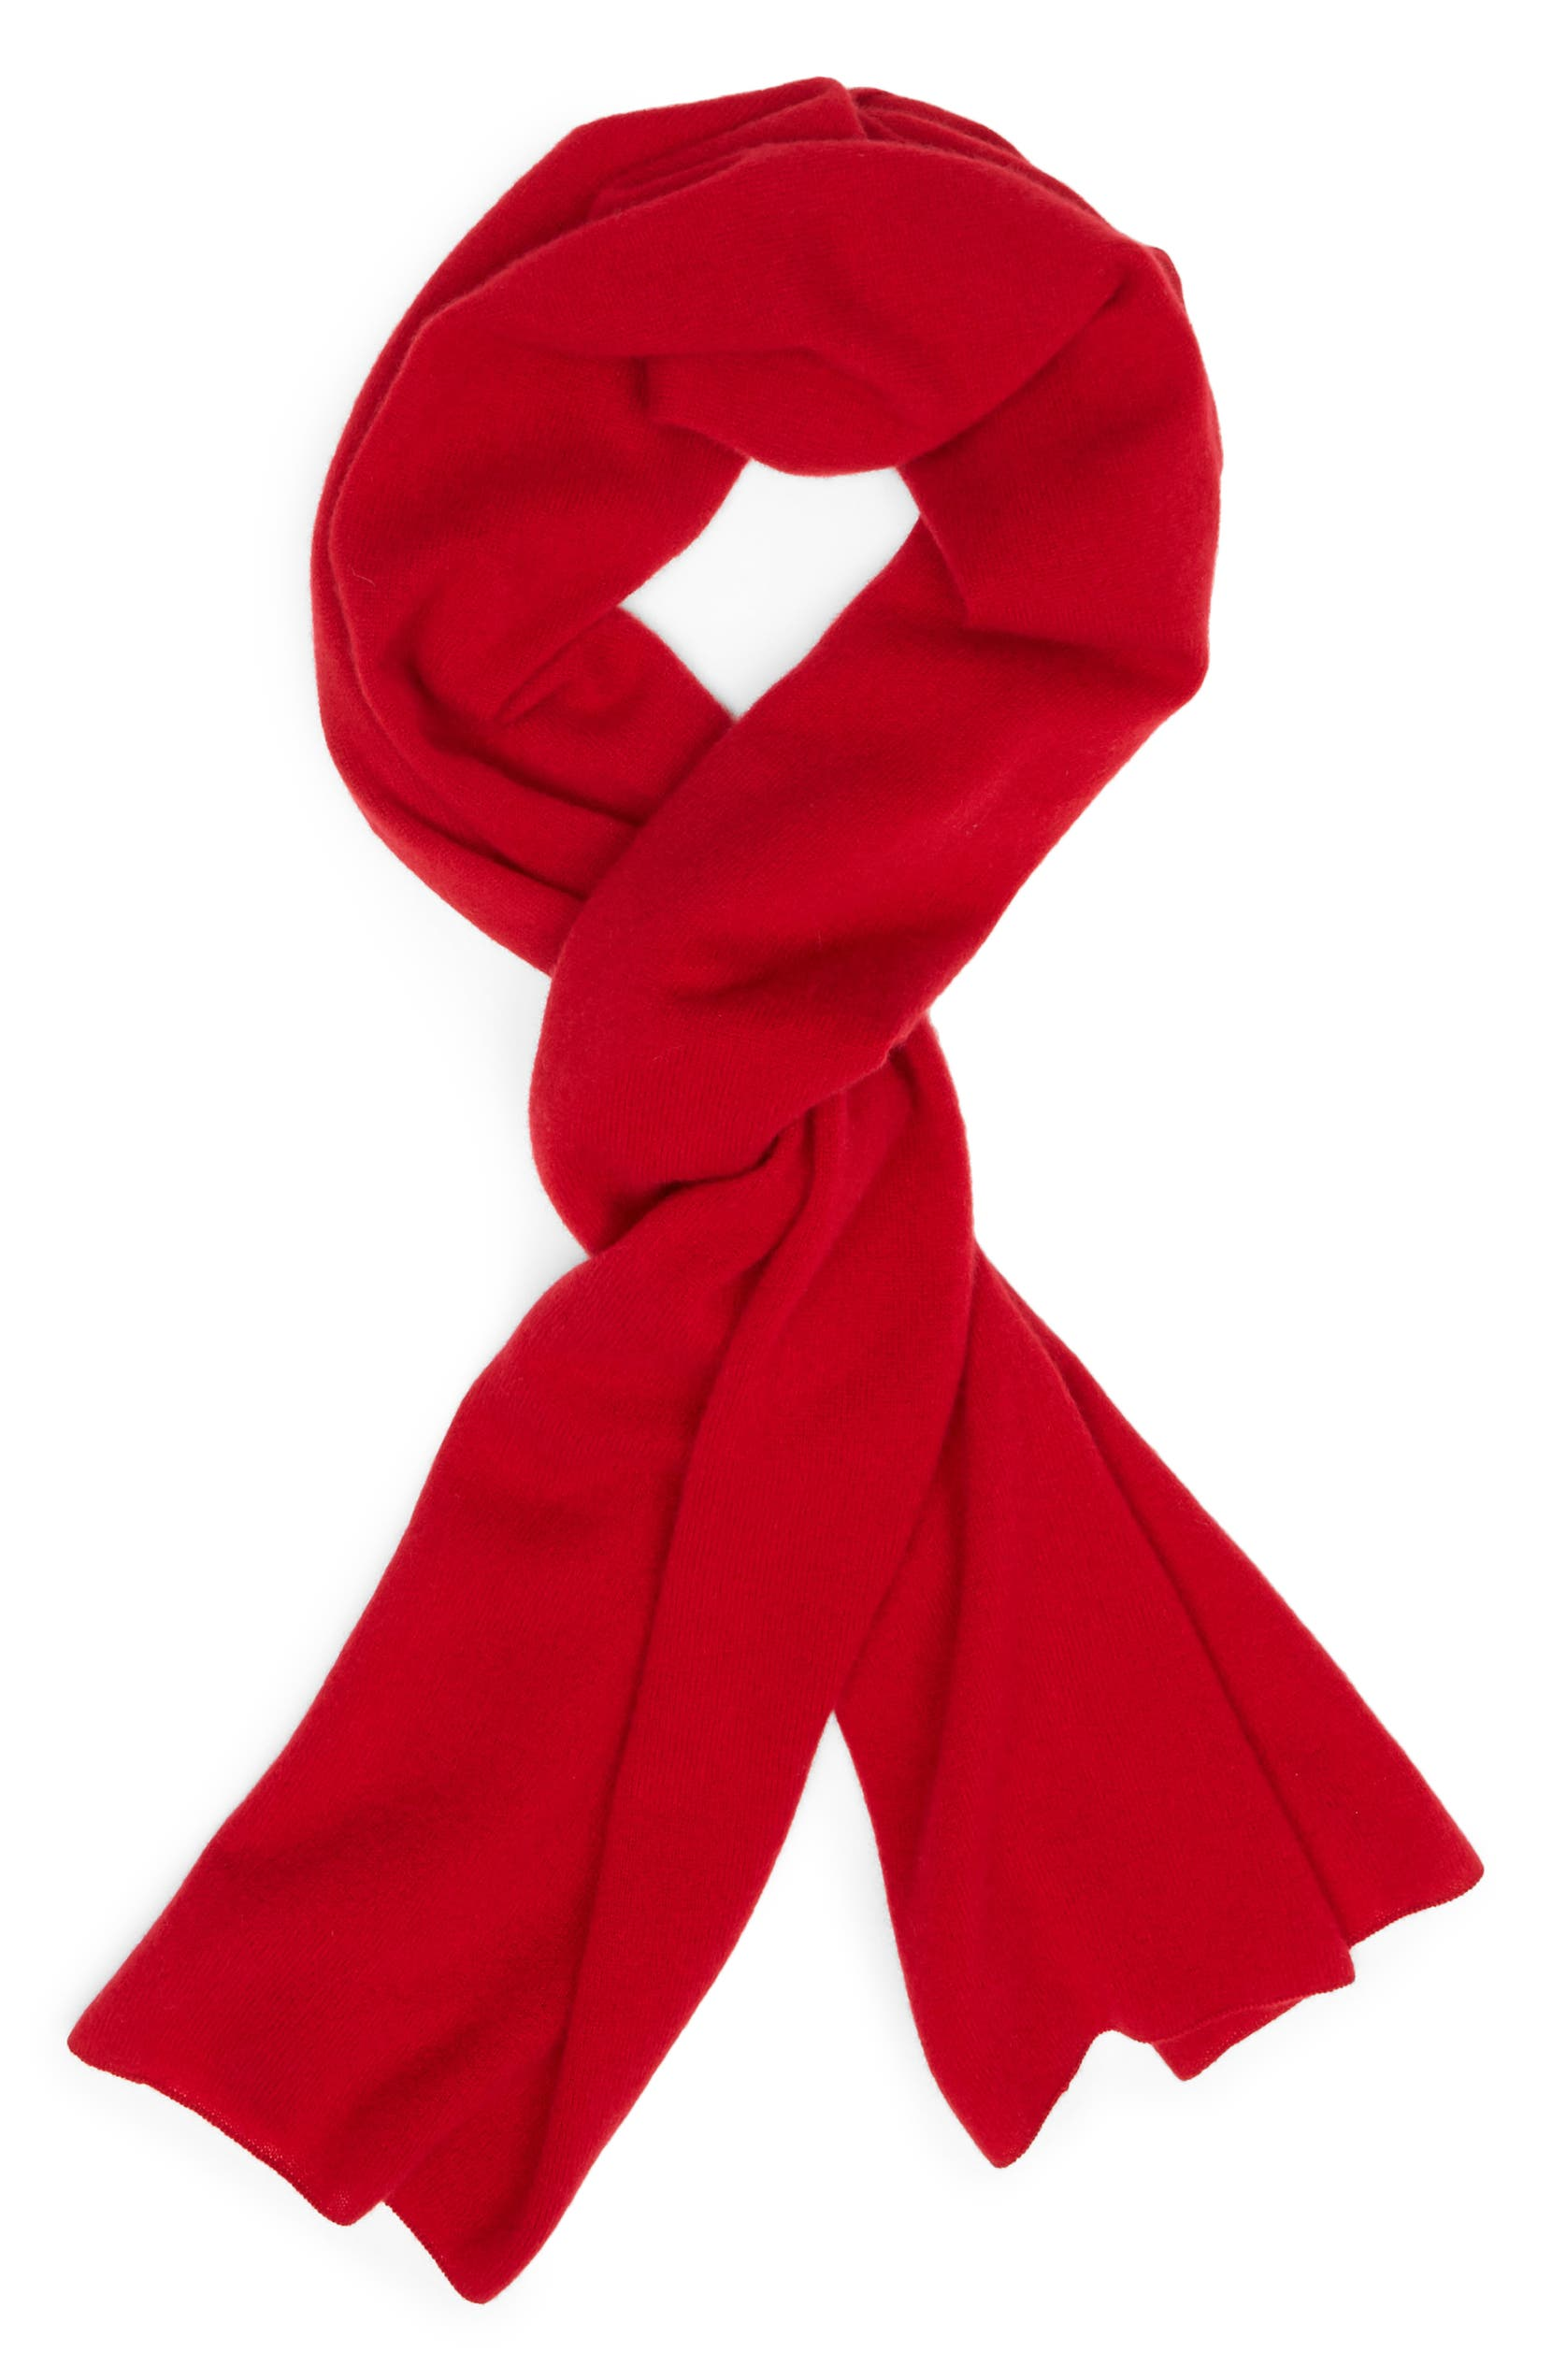 Solid Cashmere Scarf,                         Alternate,                         color, RED CHILI